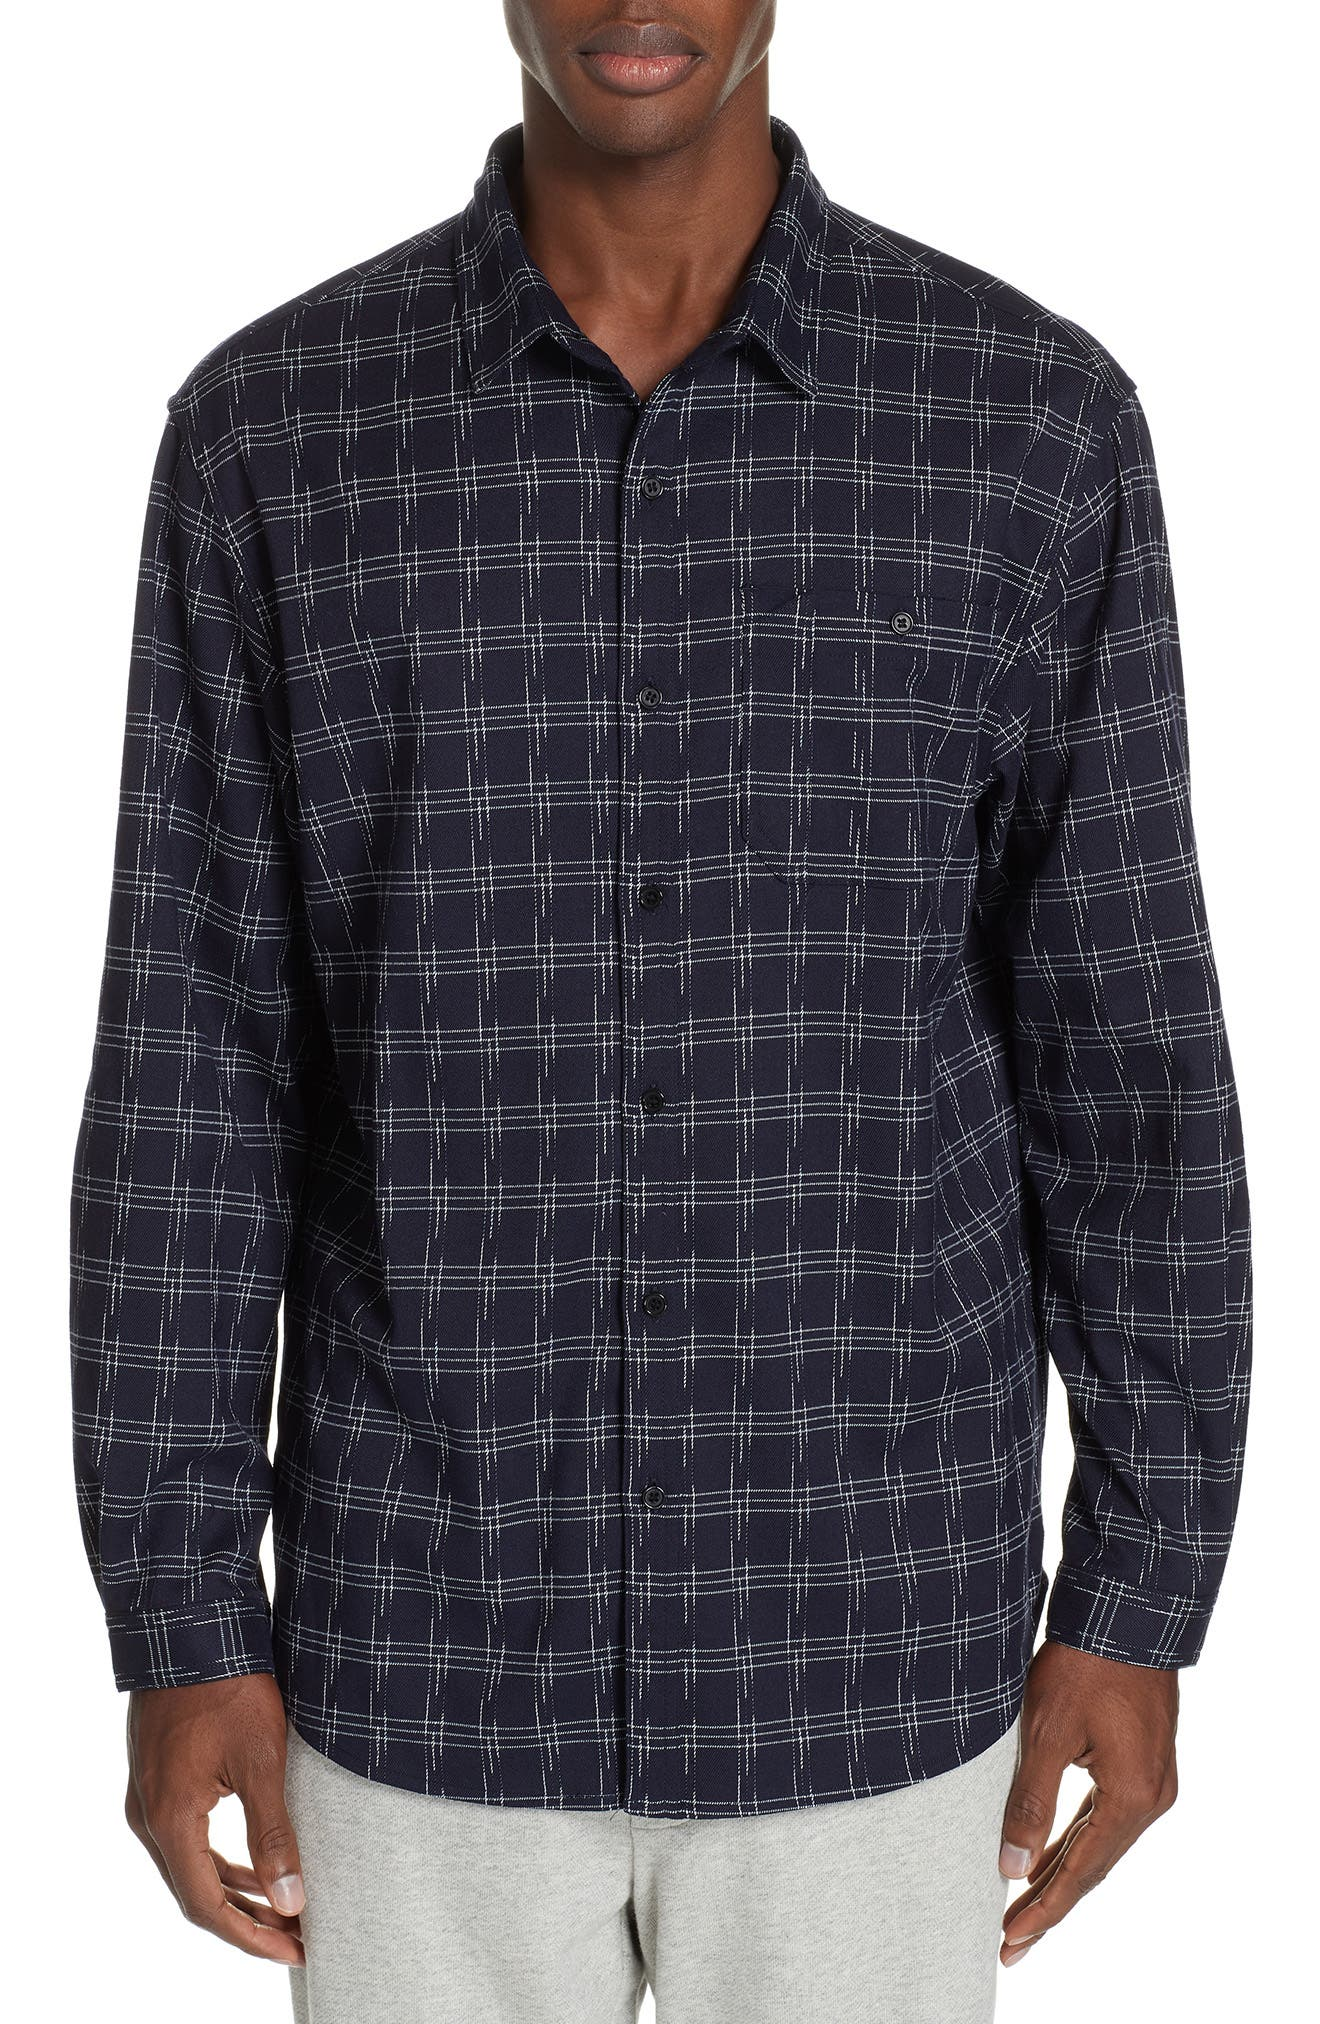 STAMPD Core Flannel Shirt in Dusty Blue